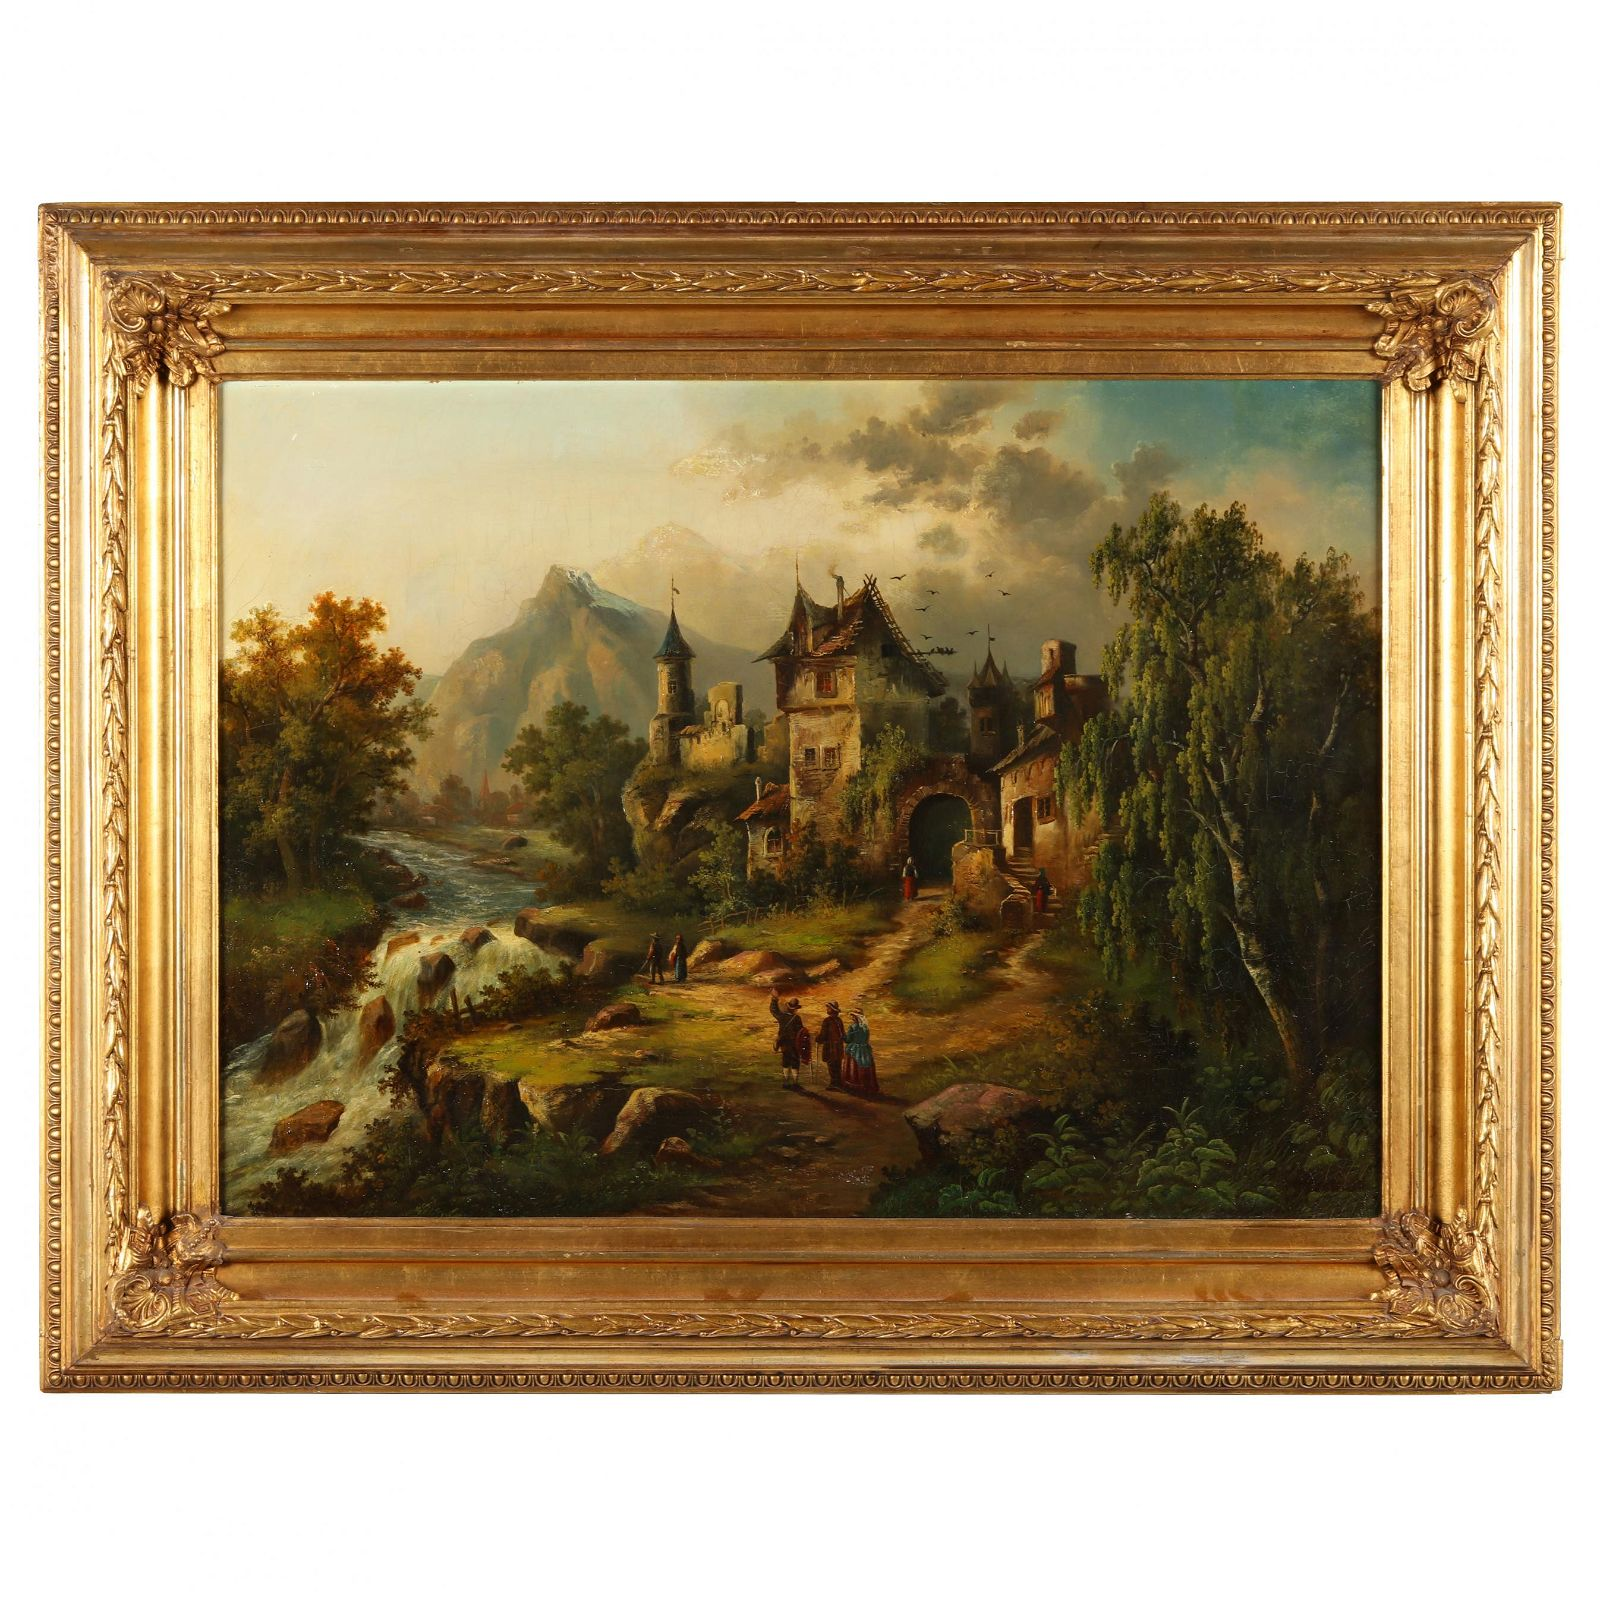 Antique Bavarian Landscape Painting with Travelers